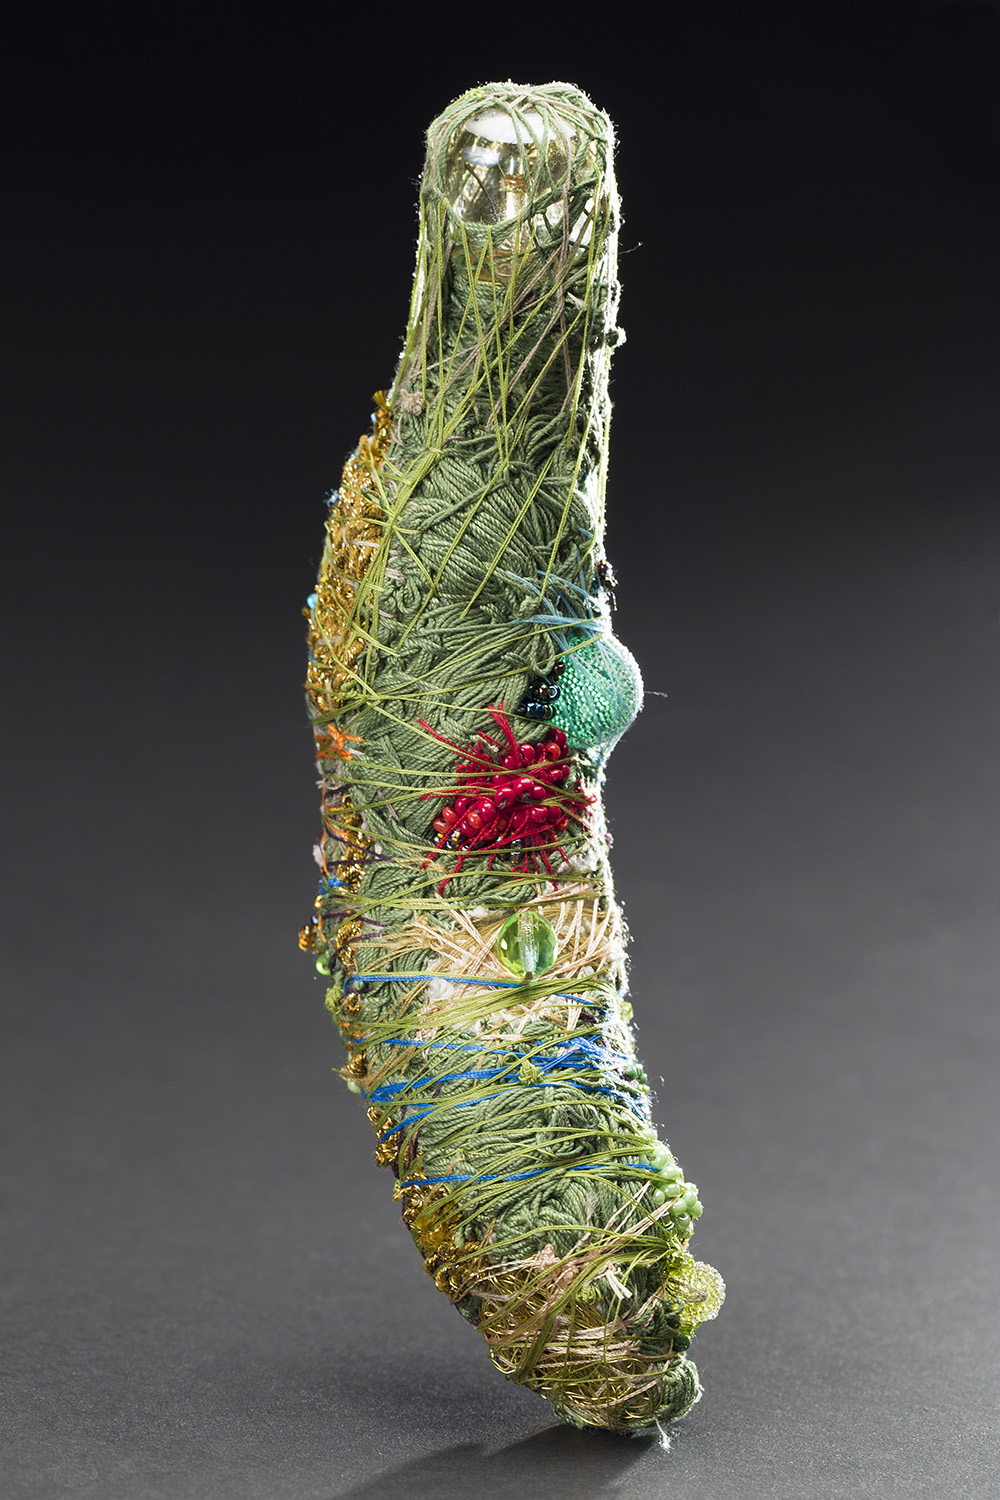 Sandra Sheehy Untitled, 2015 Beads, thread, sequins, fabric, light bulb, wire 7 x 2 x 2 inches 17.8 x 5.1 x 5.1 cm SSe 95